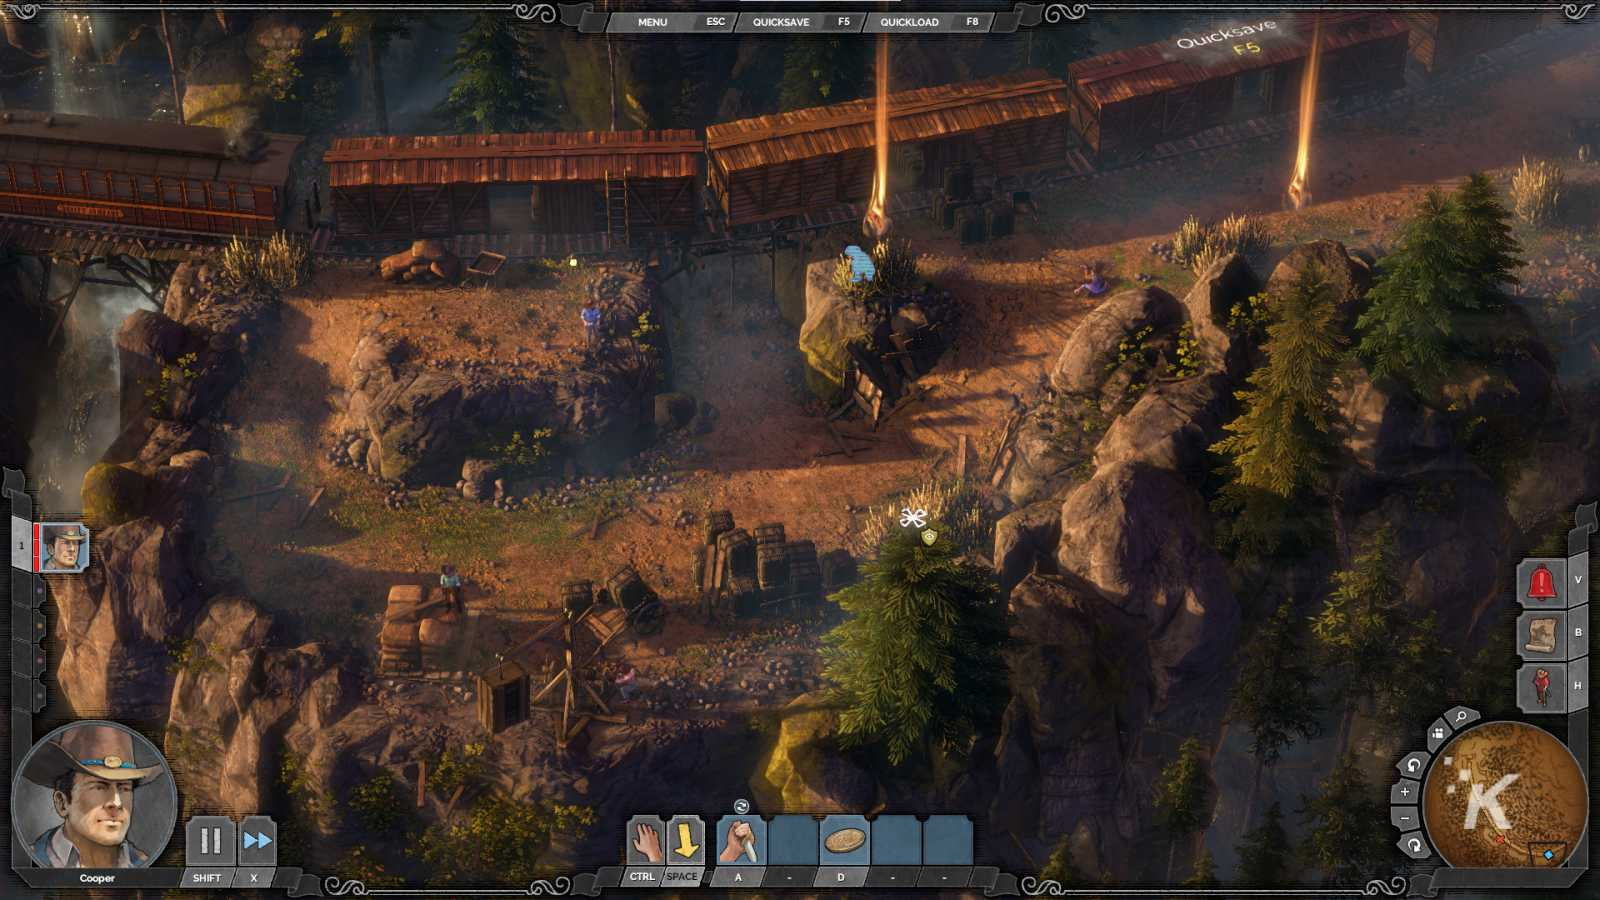 gameplay from western tactical title